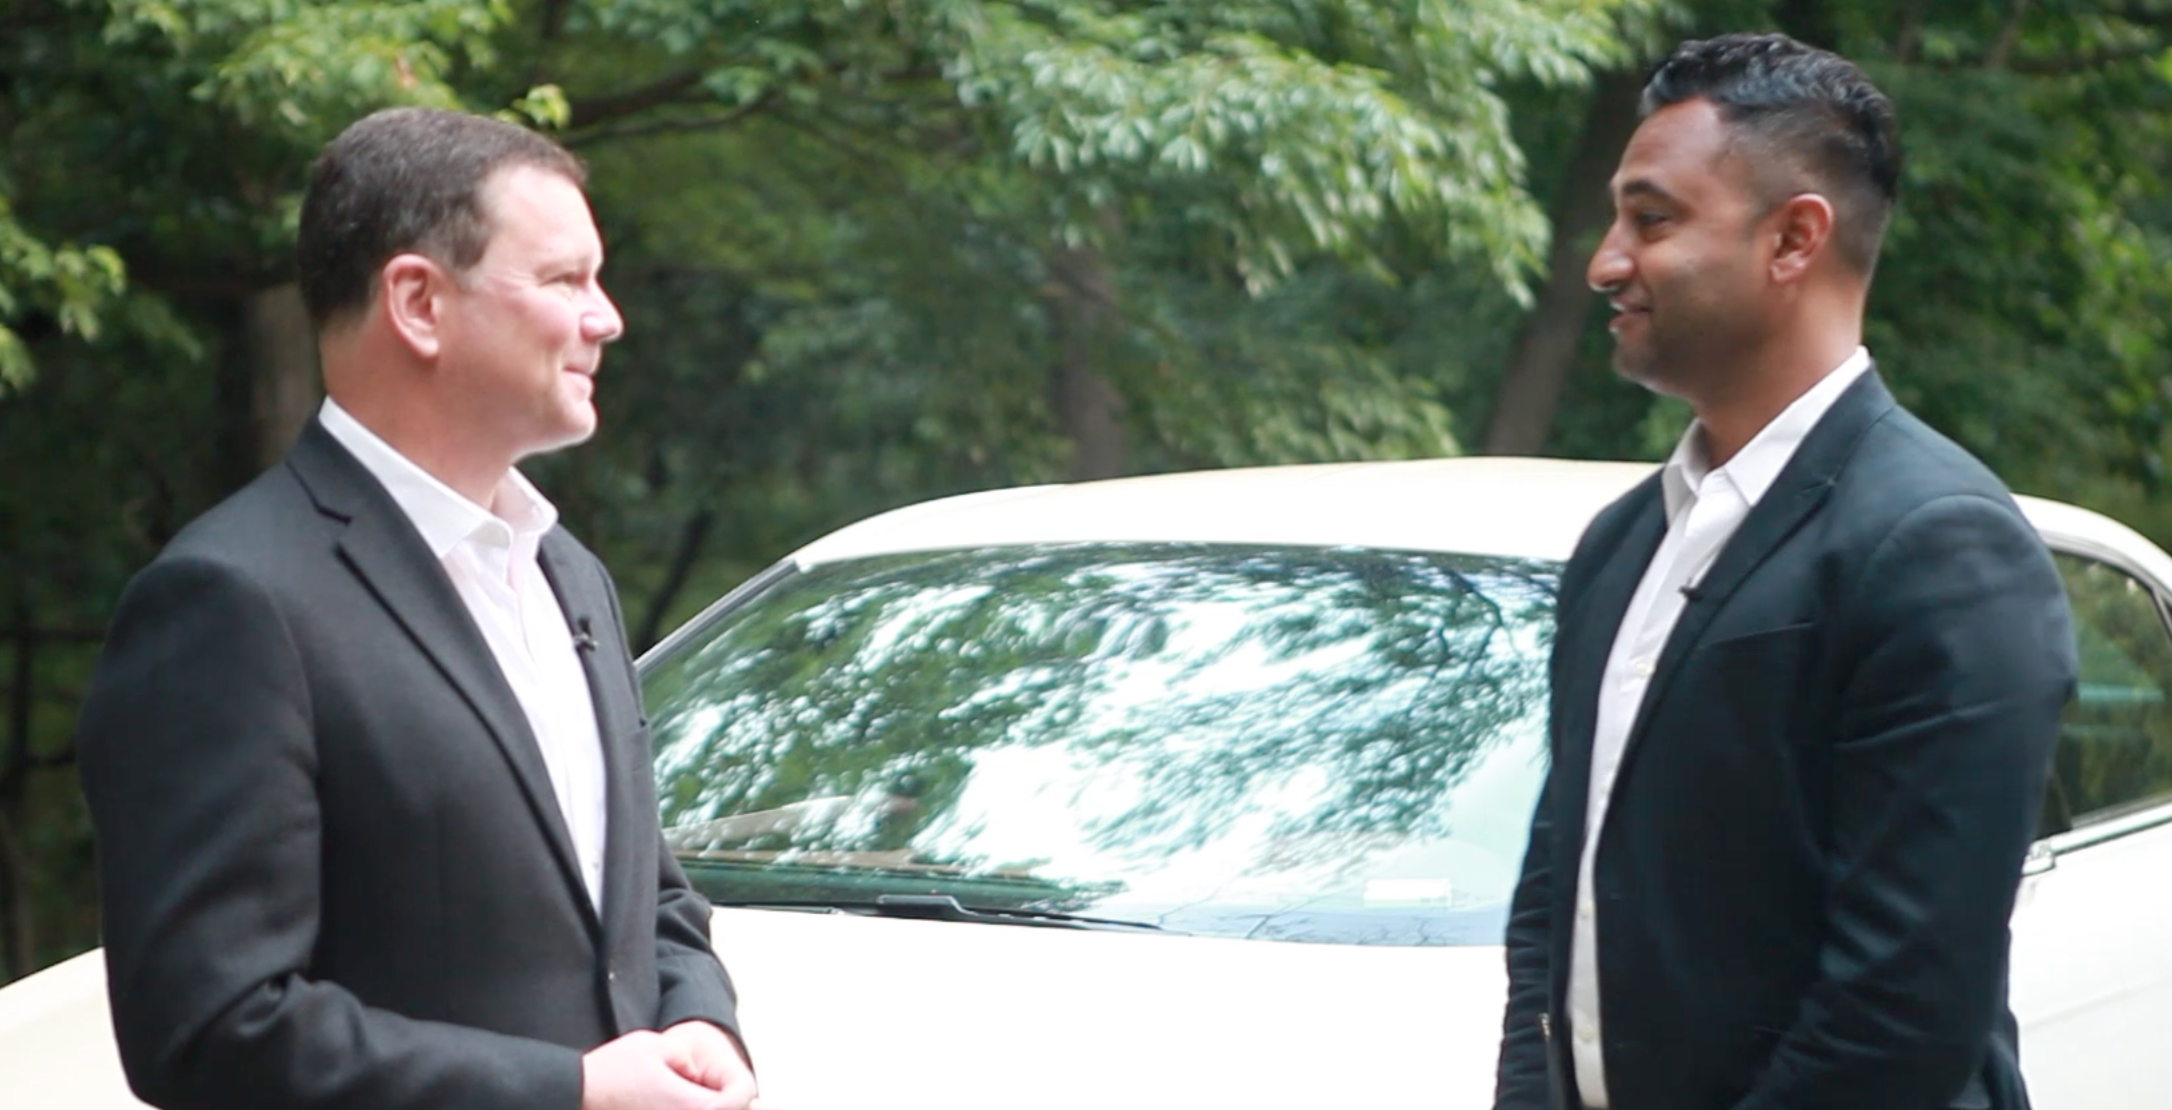 2 Dudes in a Car: Blissing out in the Lincoln Continental